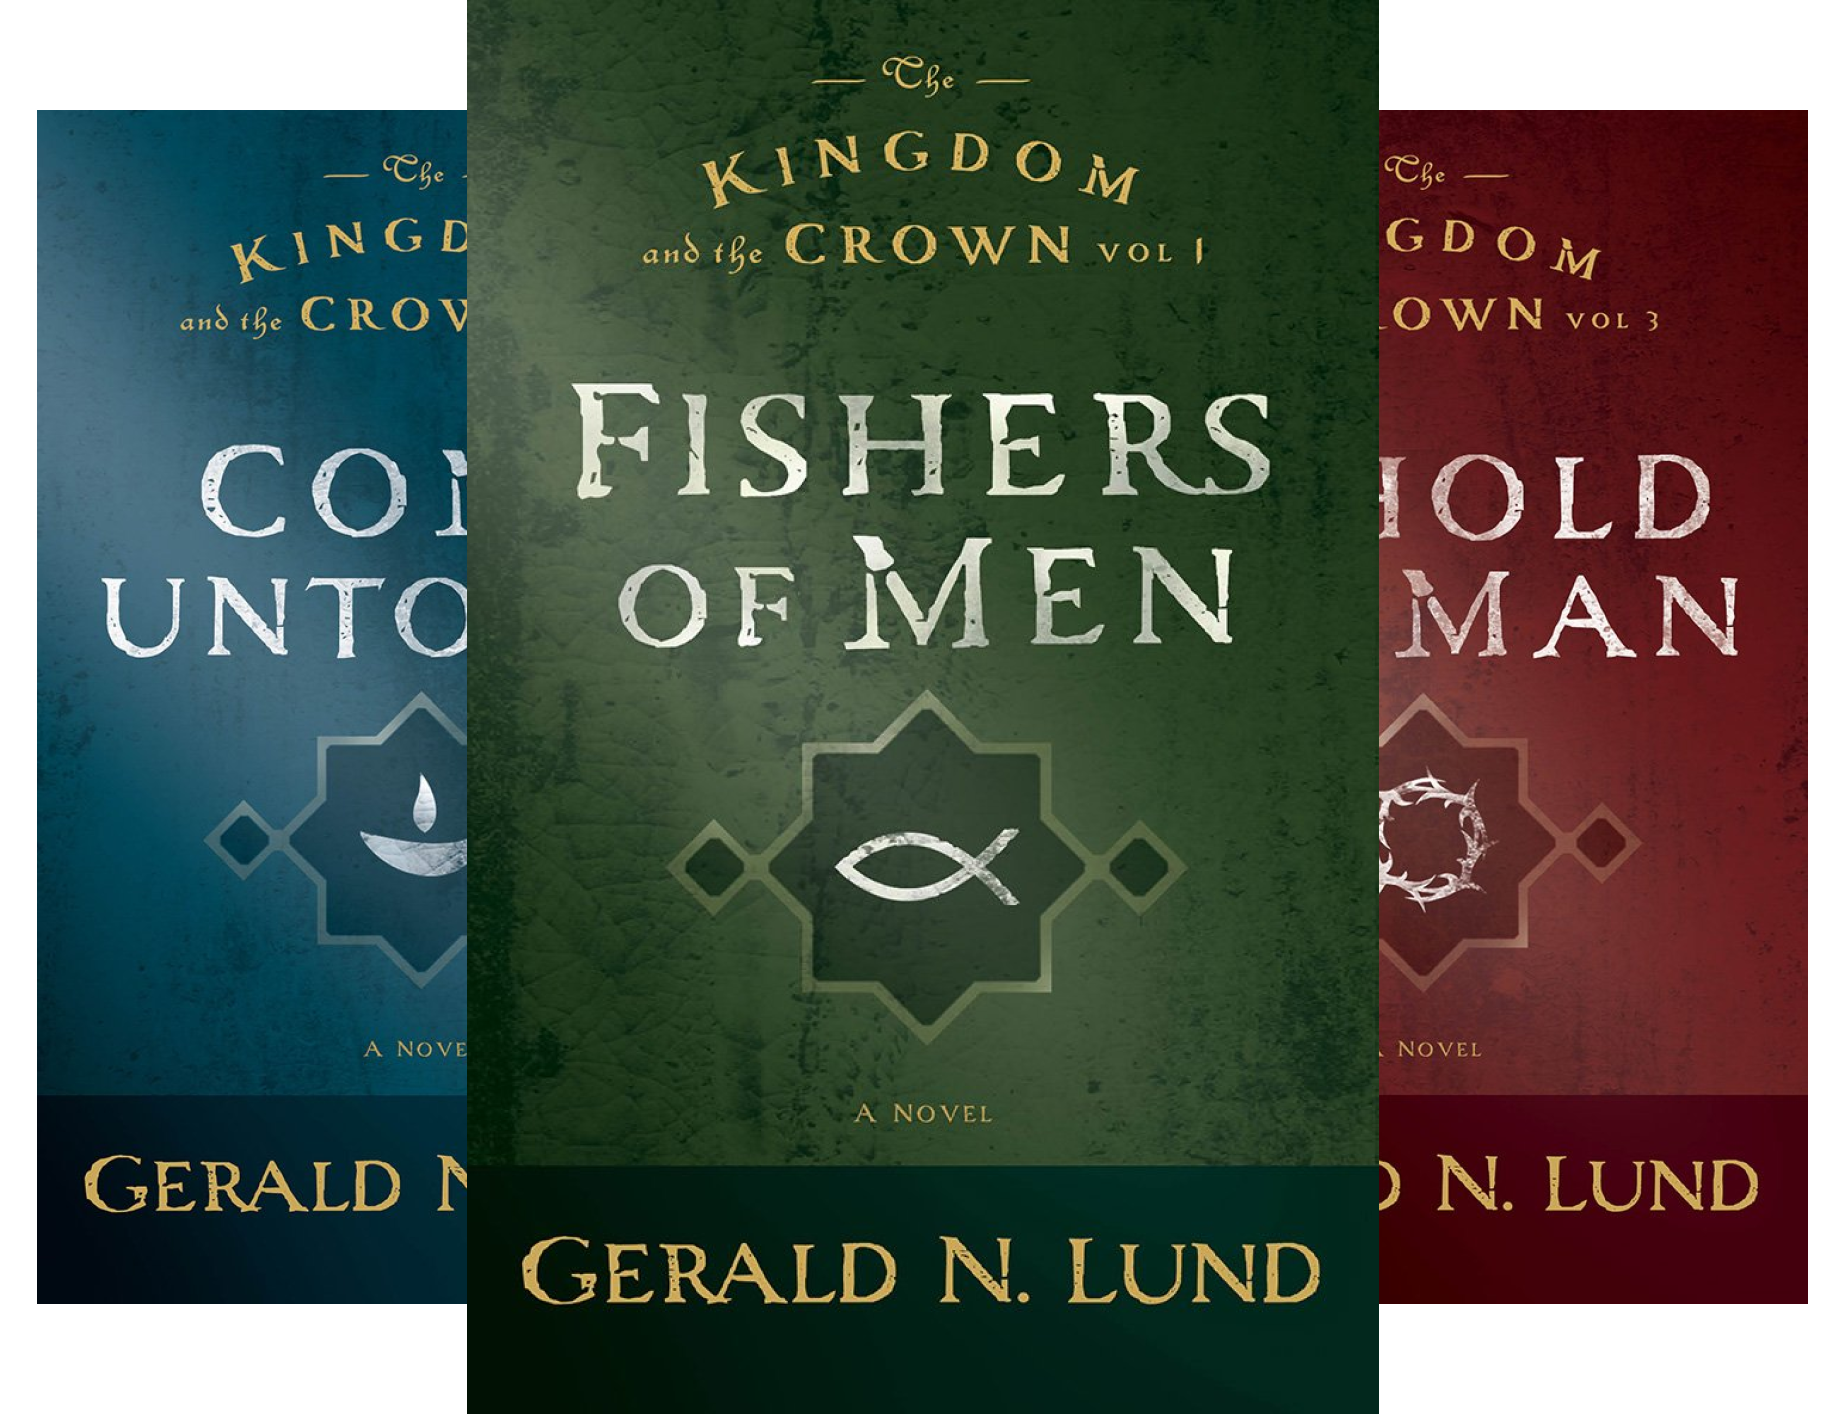 The Kingdom And the Crown (3 Book Series)